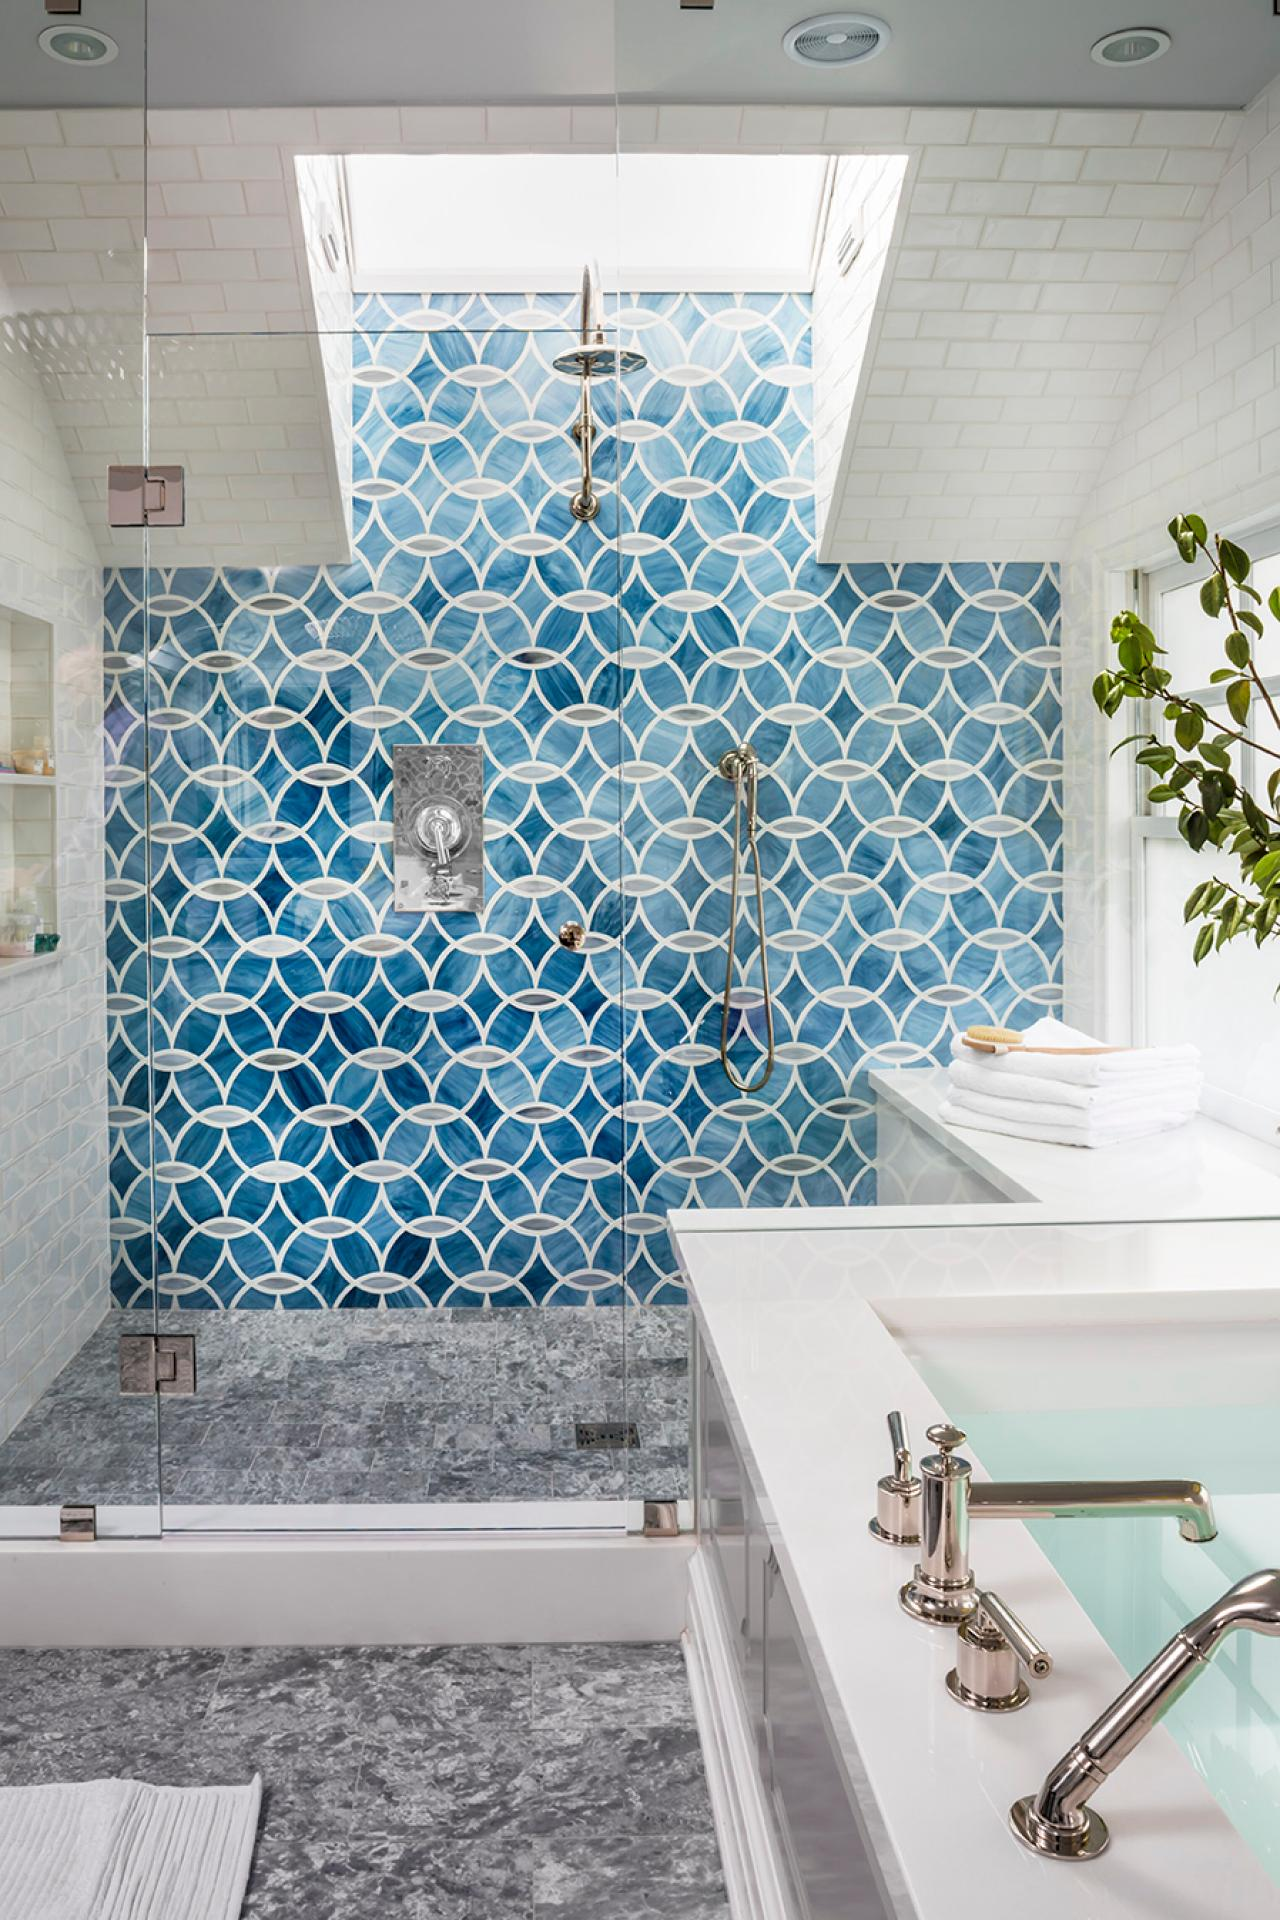 Top 20 Bathroom Tile Trends of 2017 | HGTV\'s Decorating & Design ...